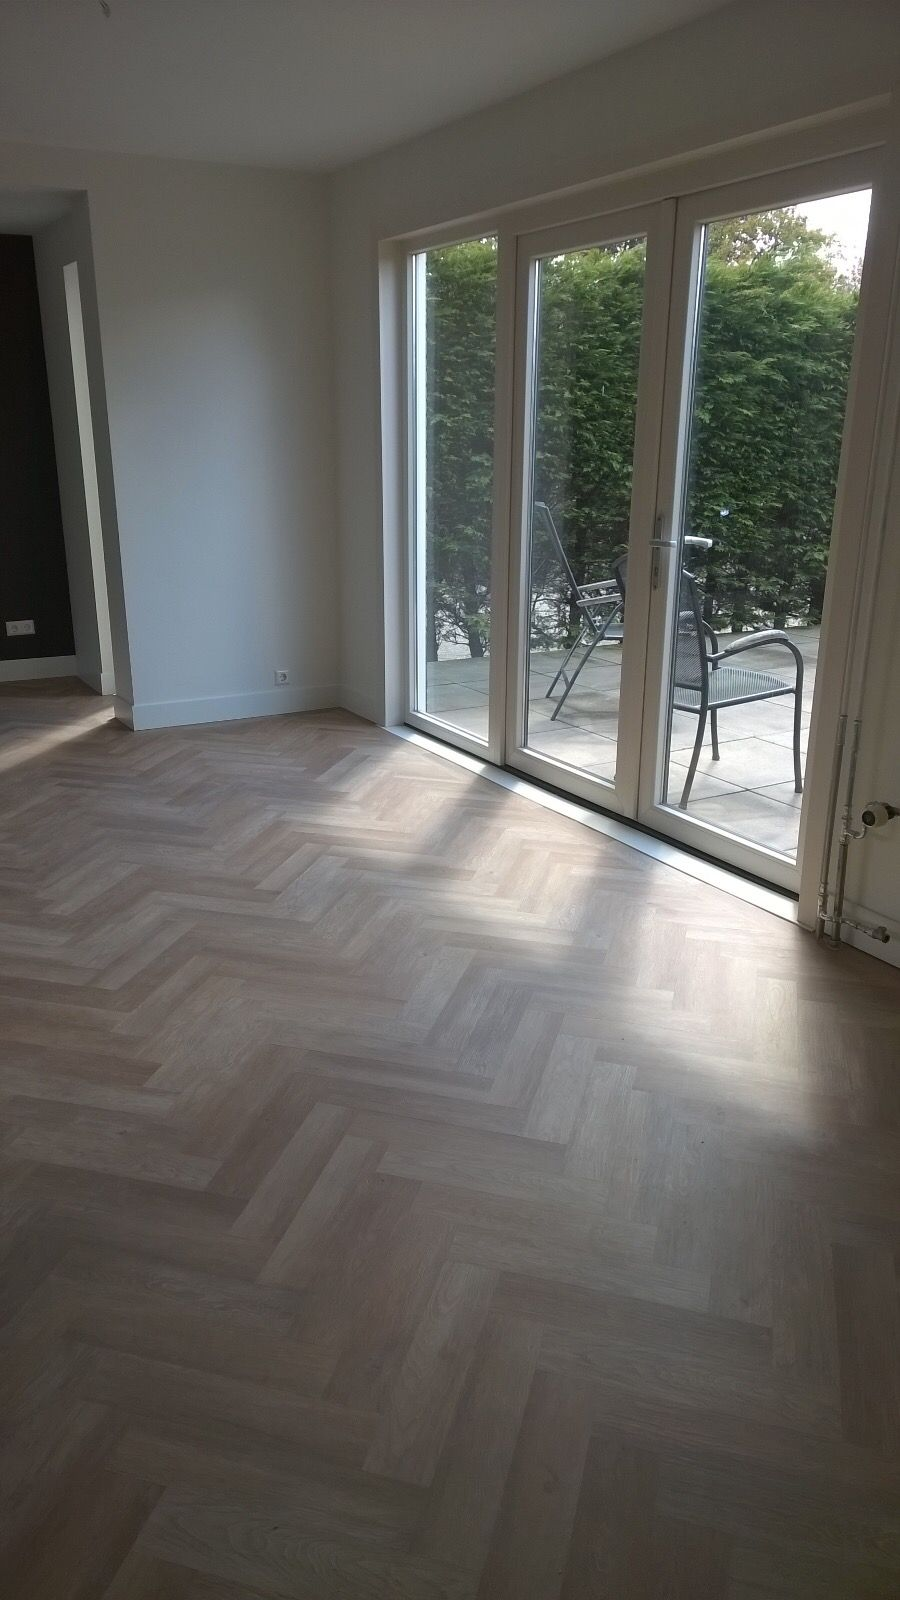 Project Floors project floors visgraat pvc vloer gelegd door vianen